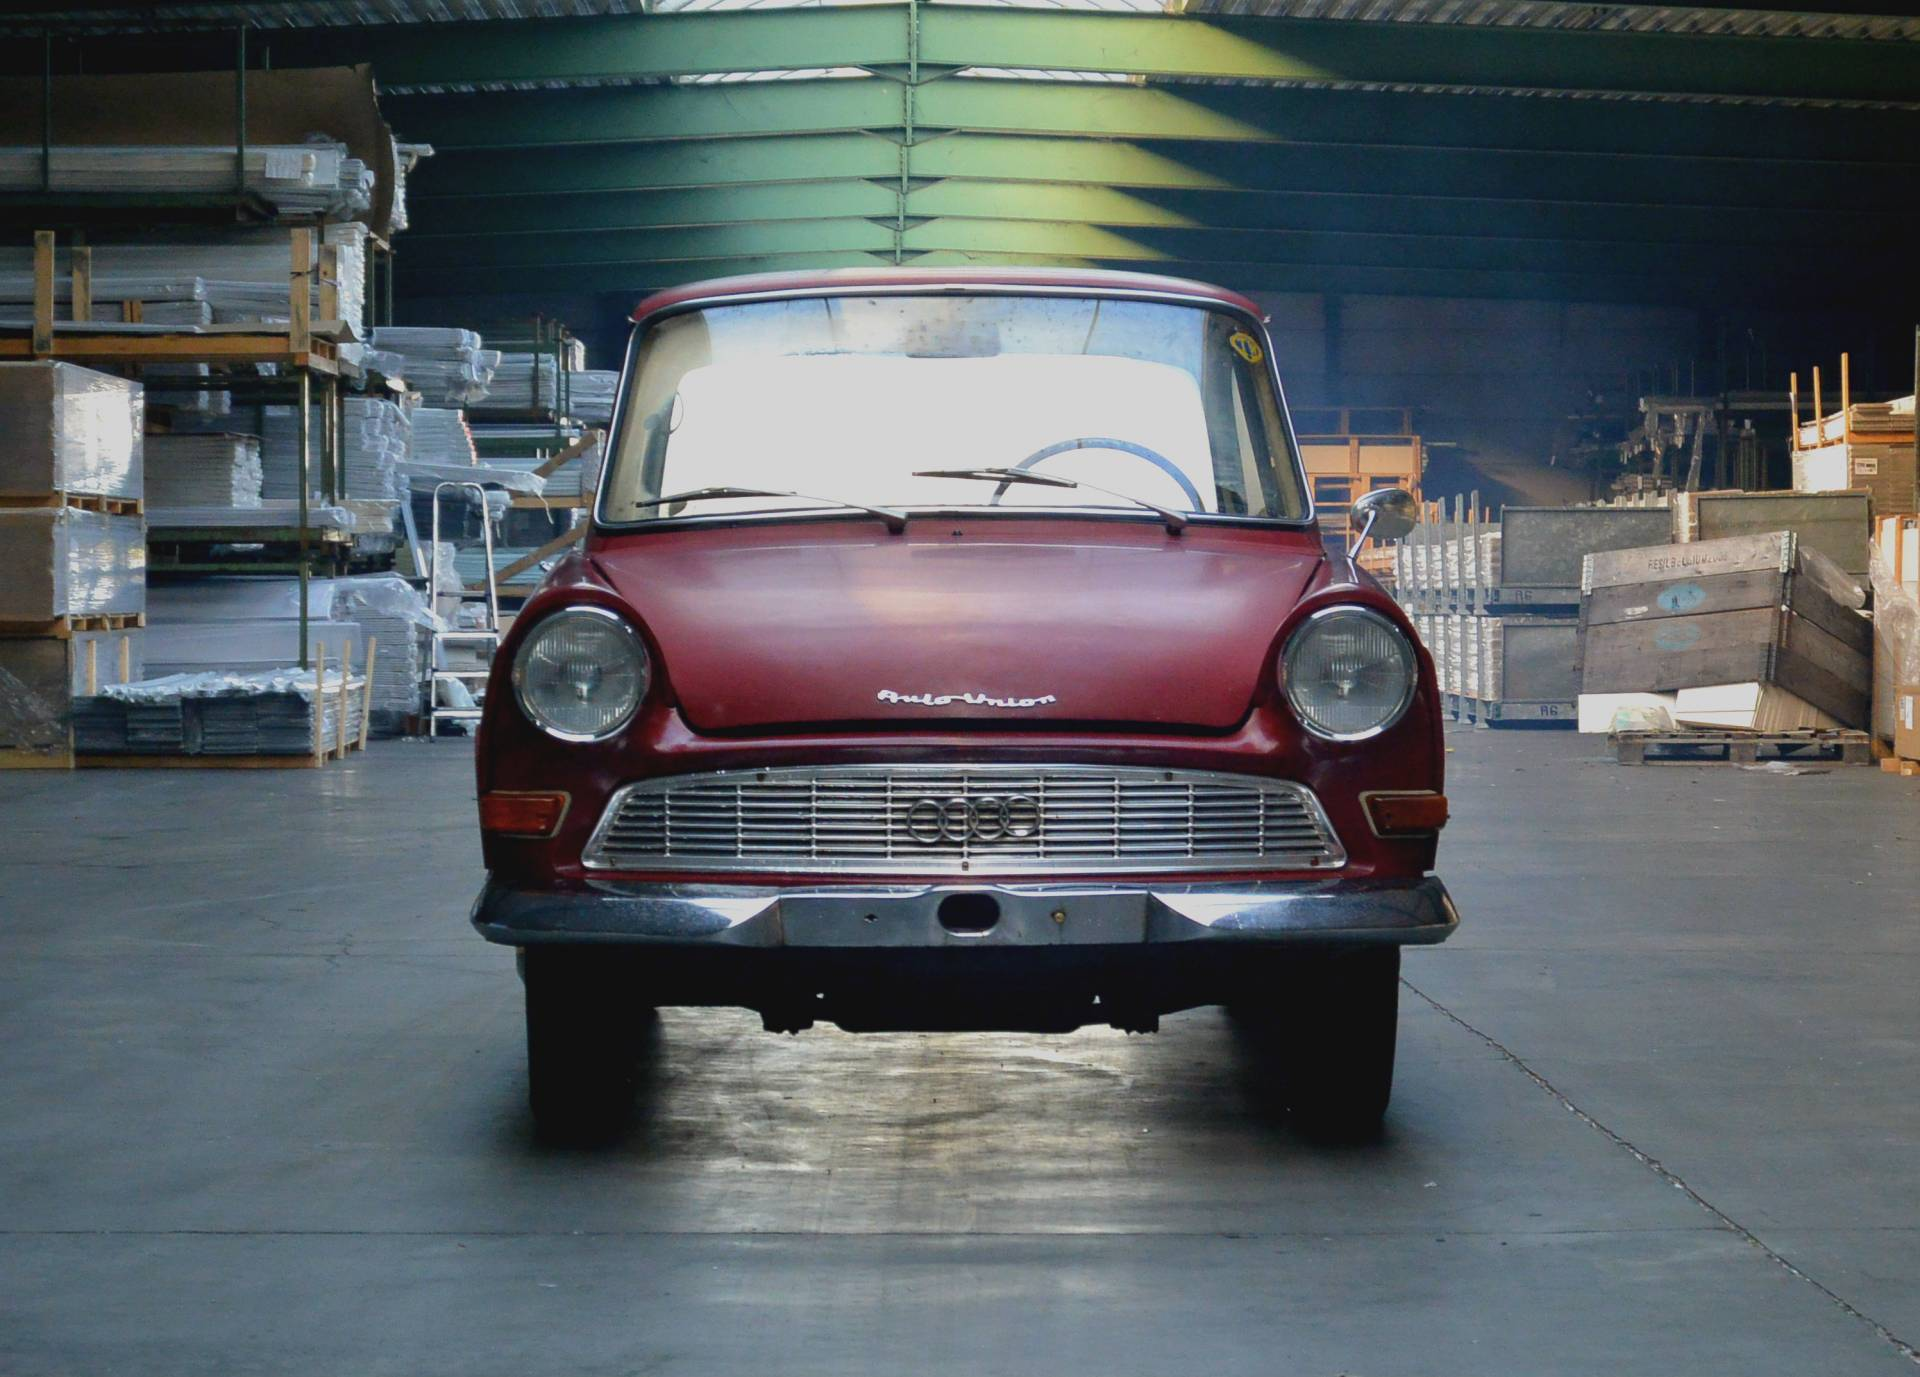 For Sale: DKW F11 (1964) offered for GBP 5,420